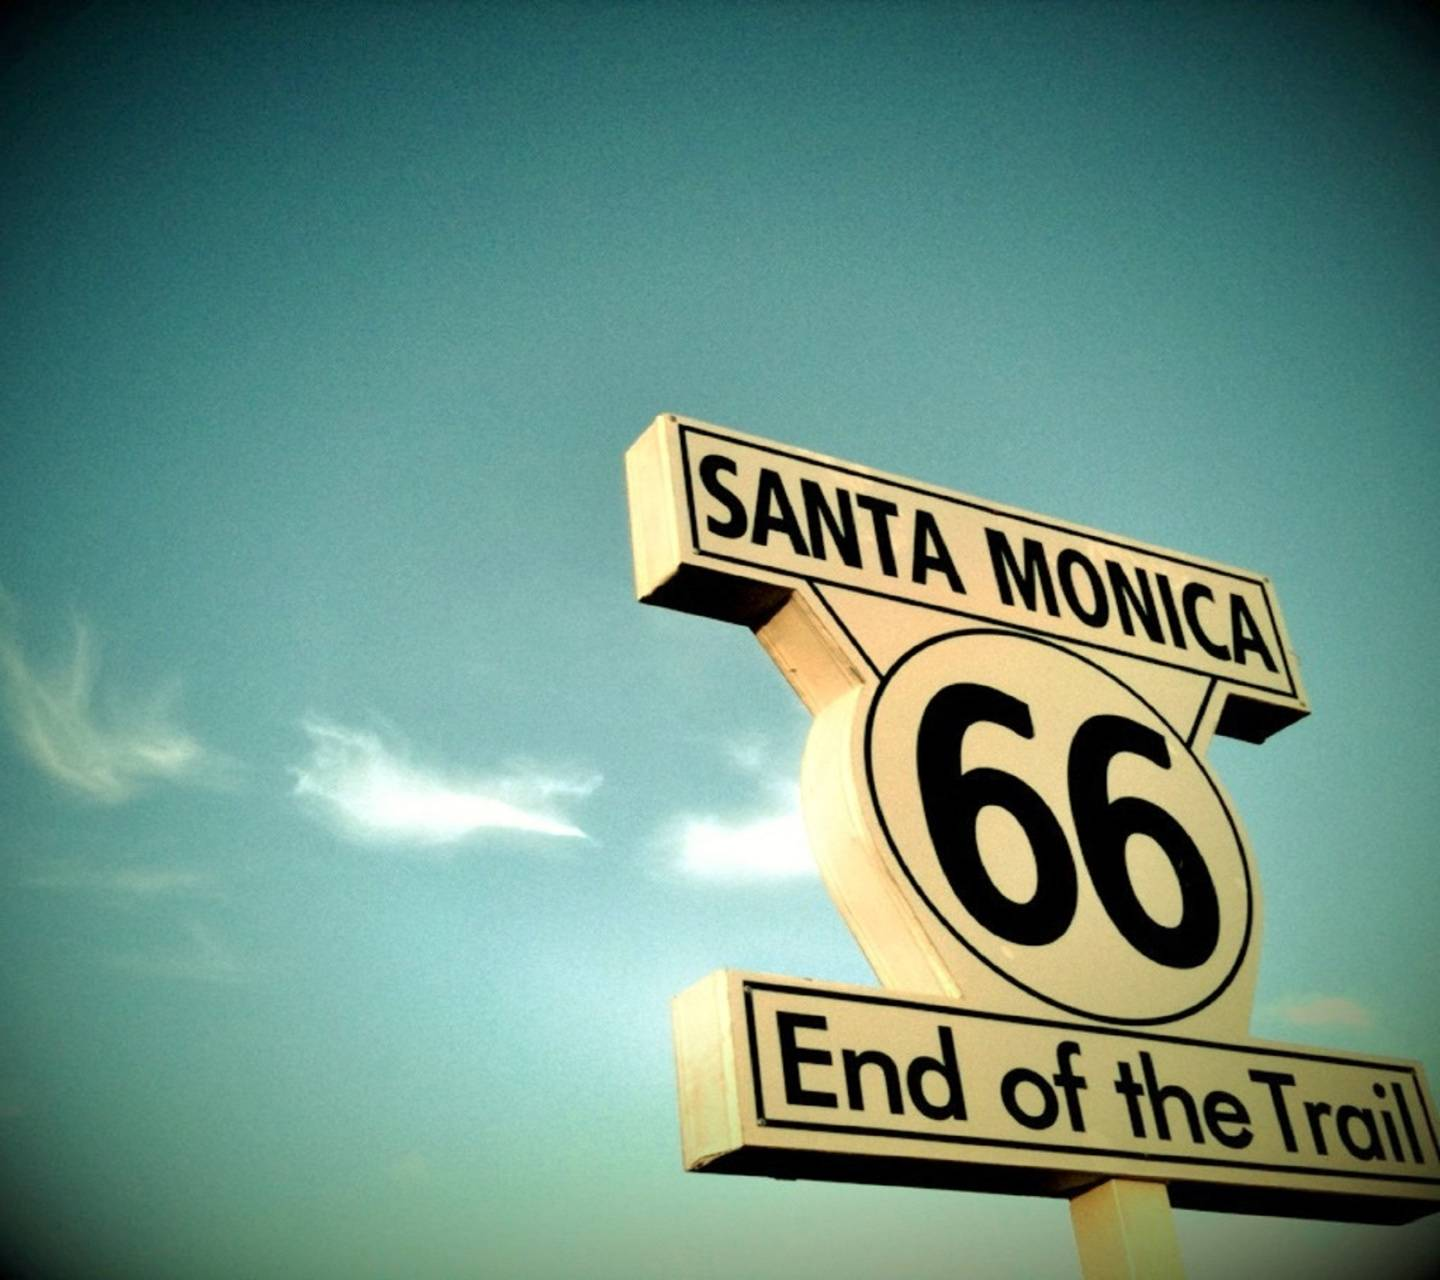 Route 66 Start-End